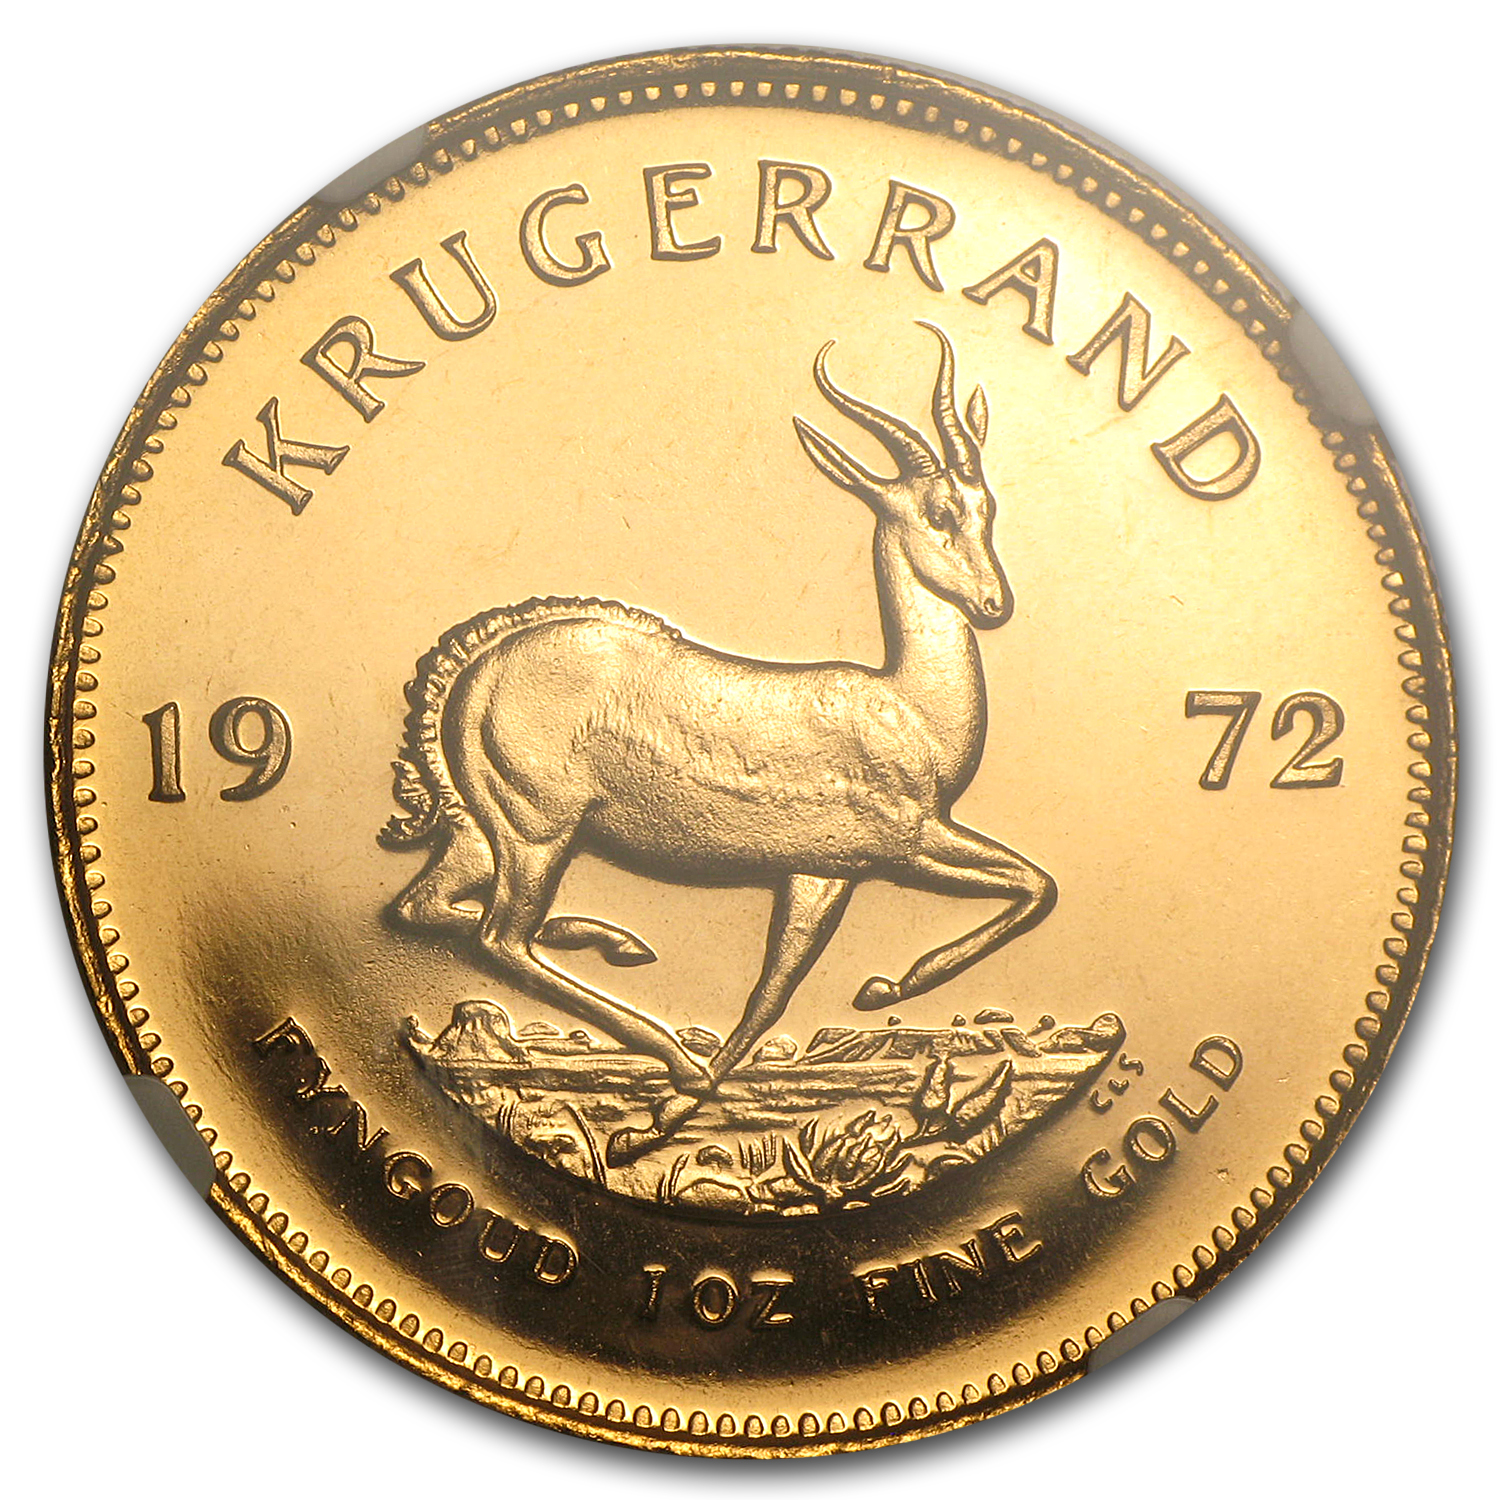 1972 South Africa 1 oz Gold Krugerrand PF-66 Cameo NGC